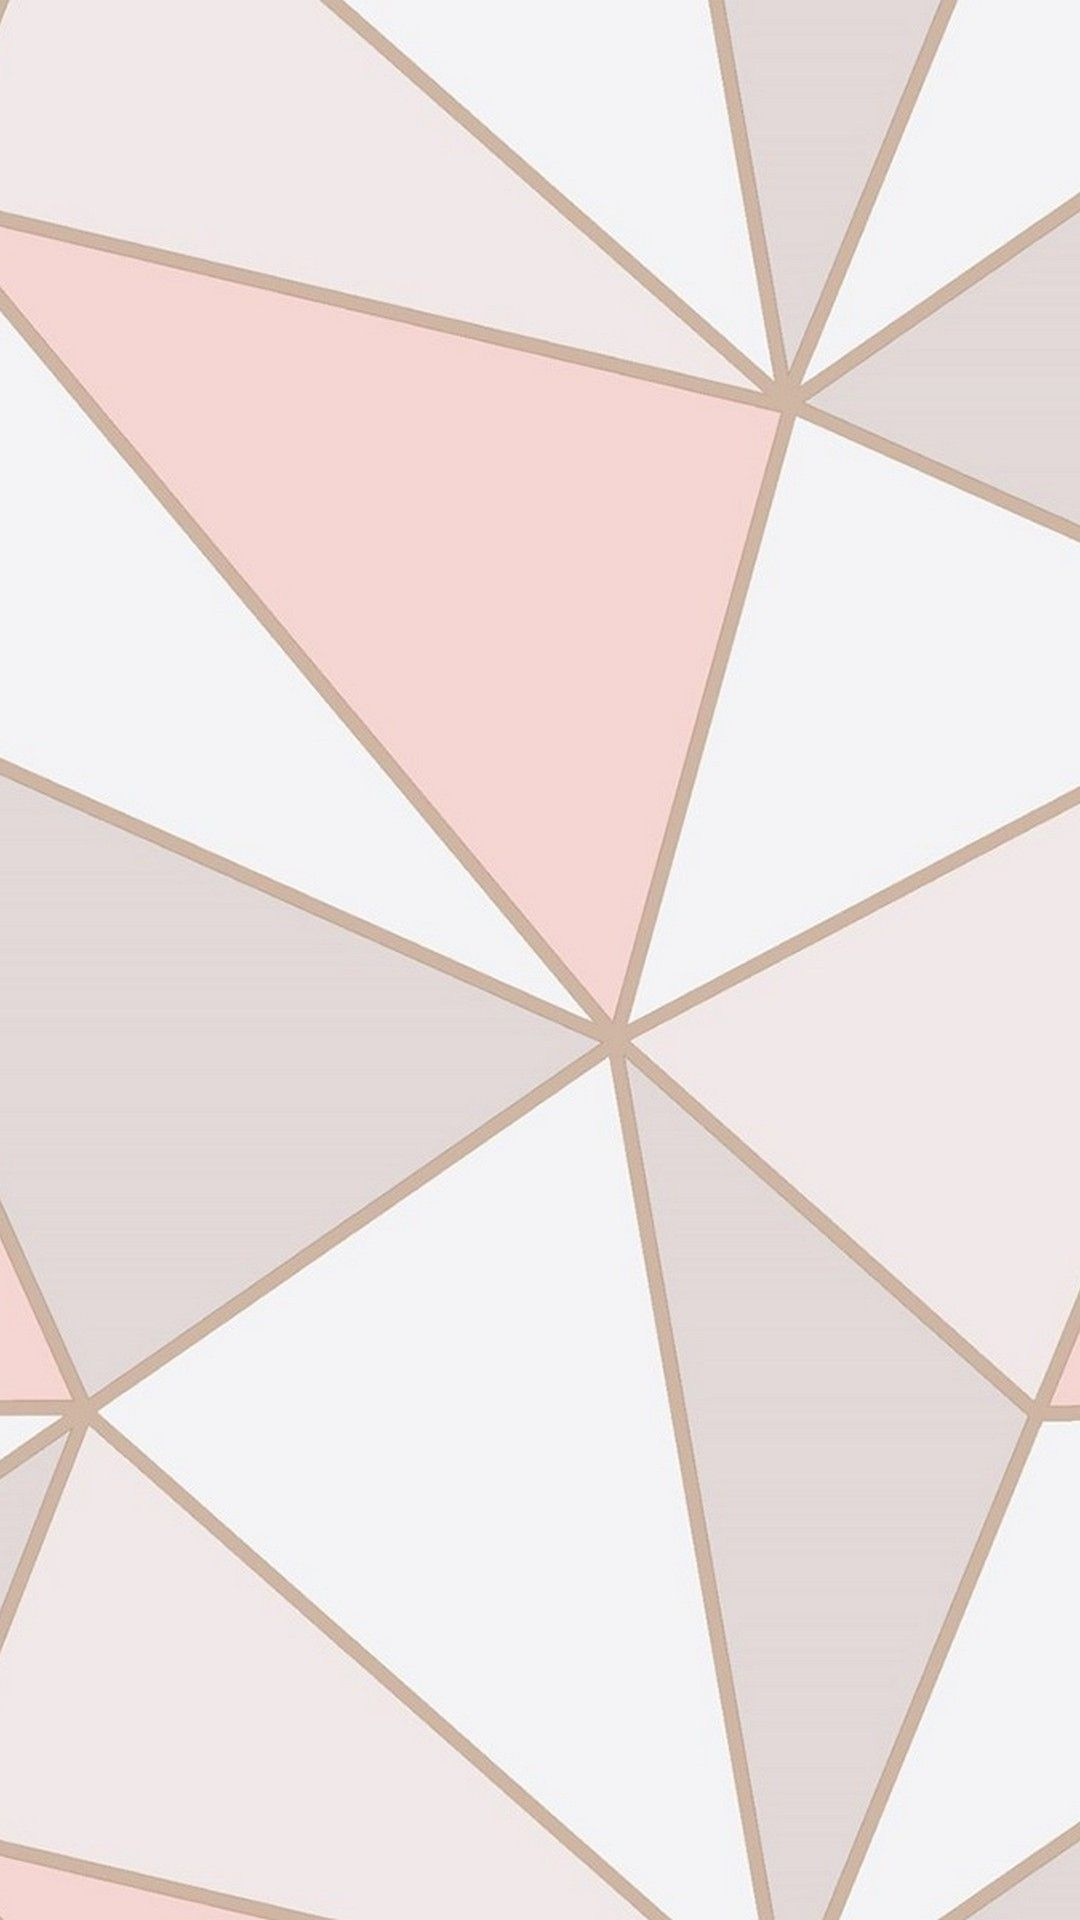 Geometric Grey And Rose Gold Background In 2020 Gold Wallpaper Iphone Gold Wallpaper Gold Wallpaper Hd